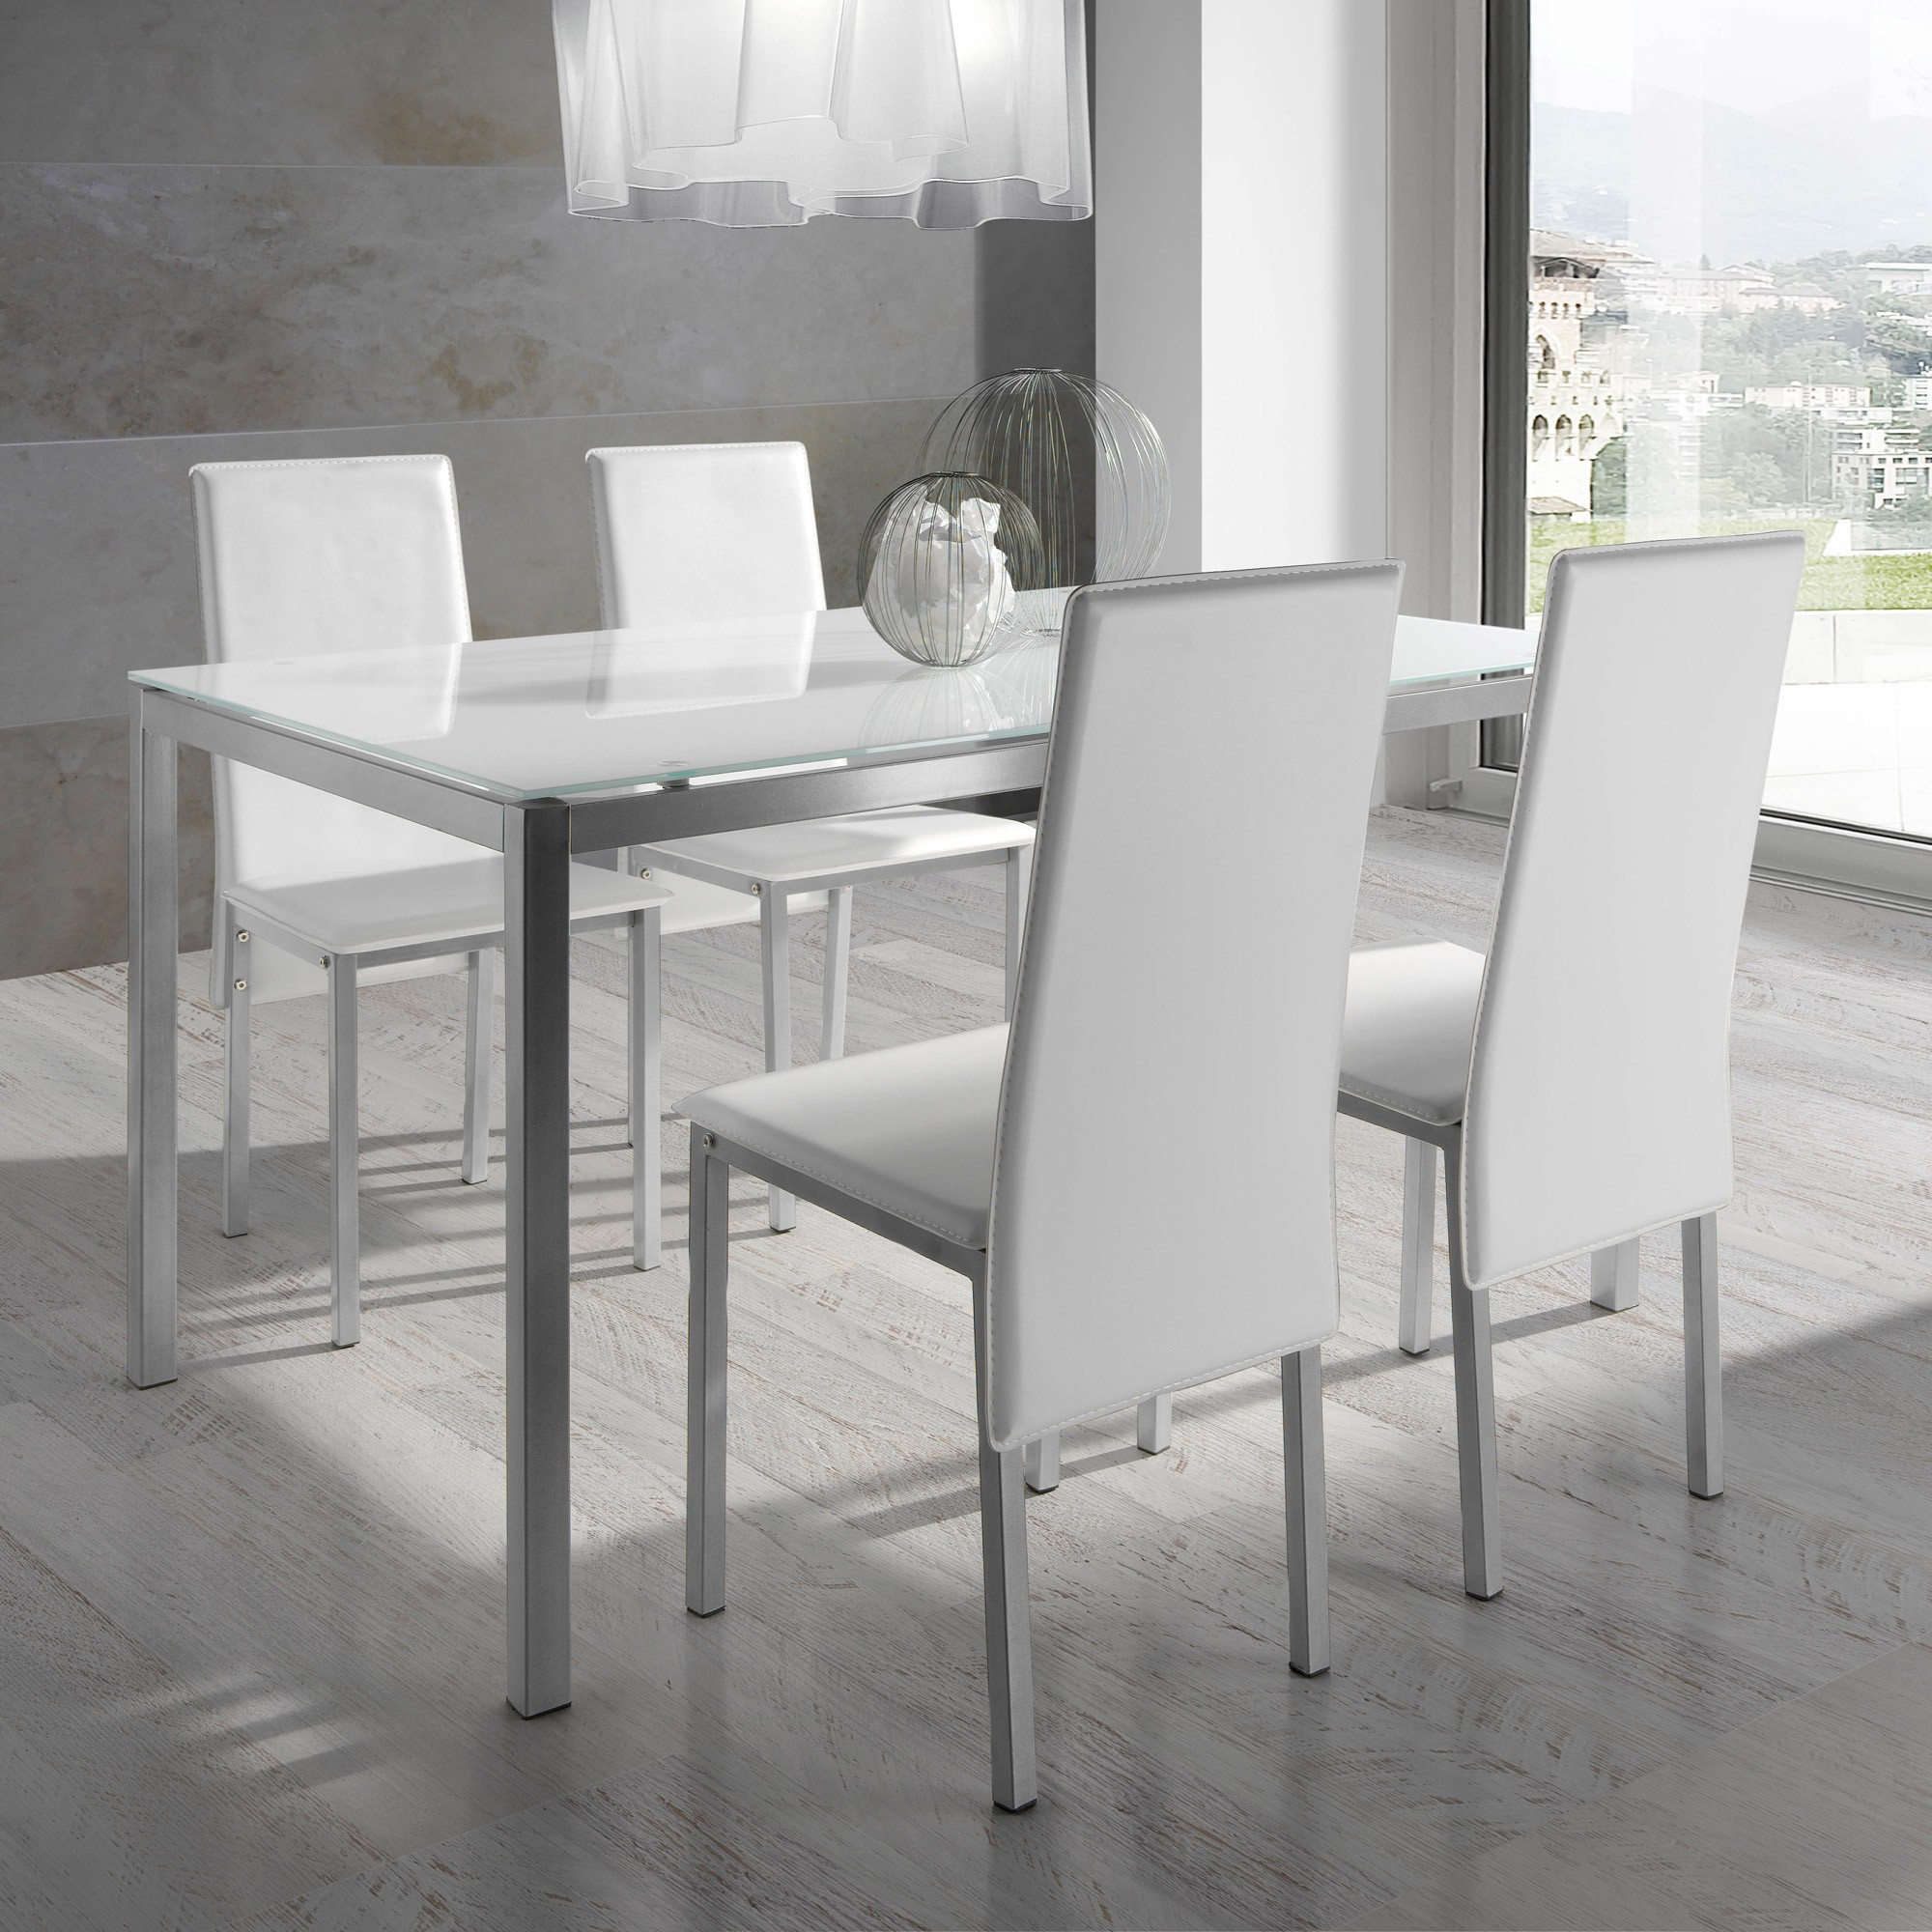 Ensemble table et chaise salle a manger but chaise for Table et chaise blanche